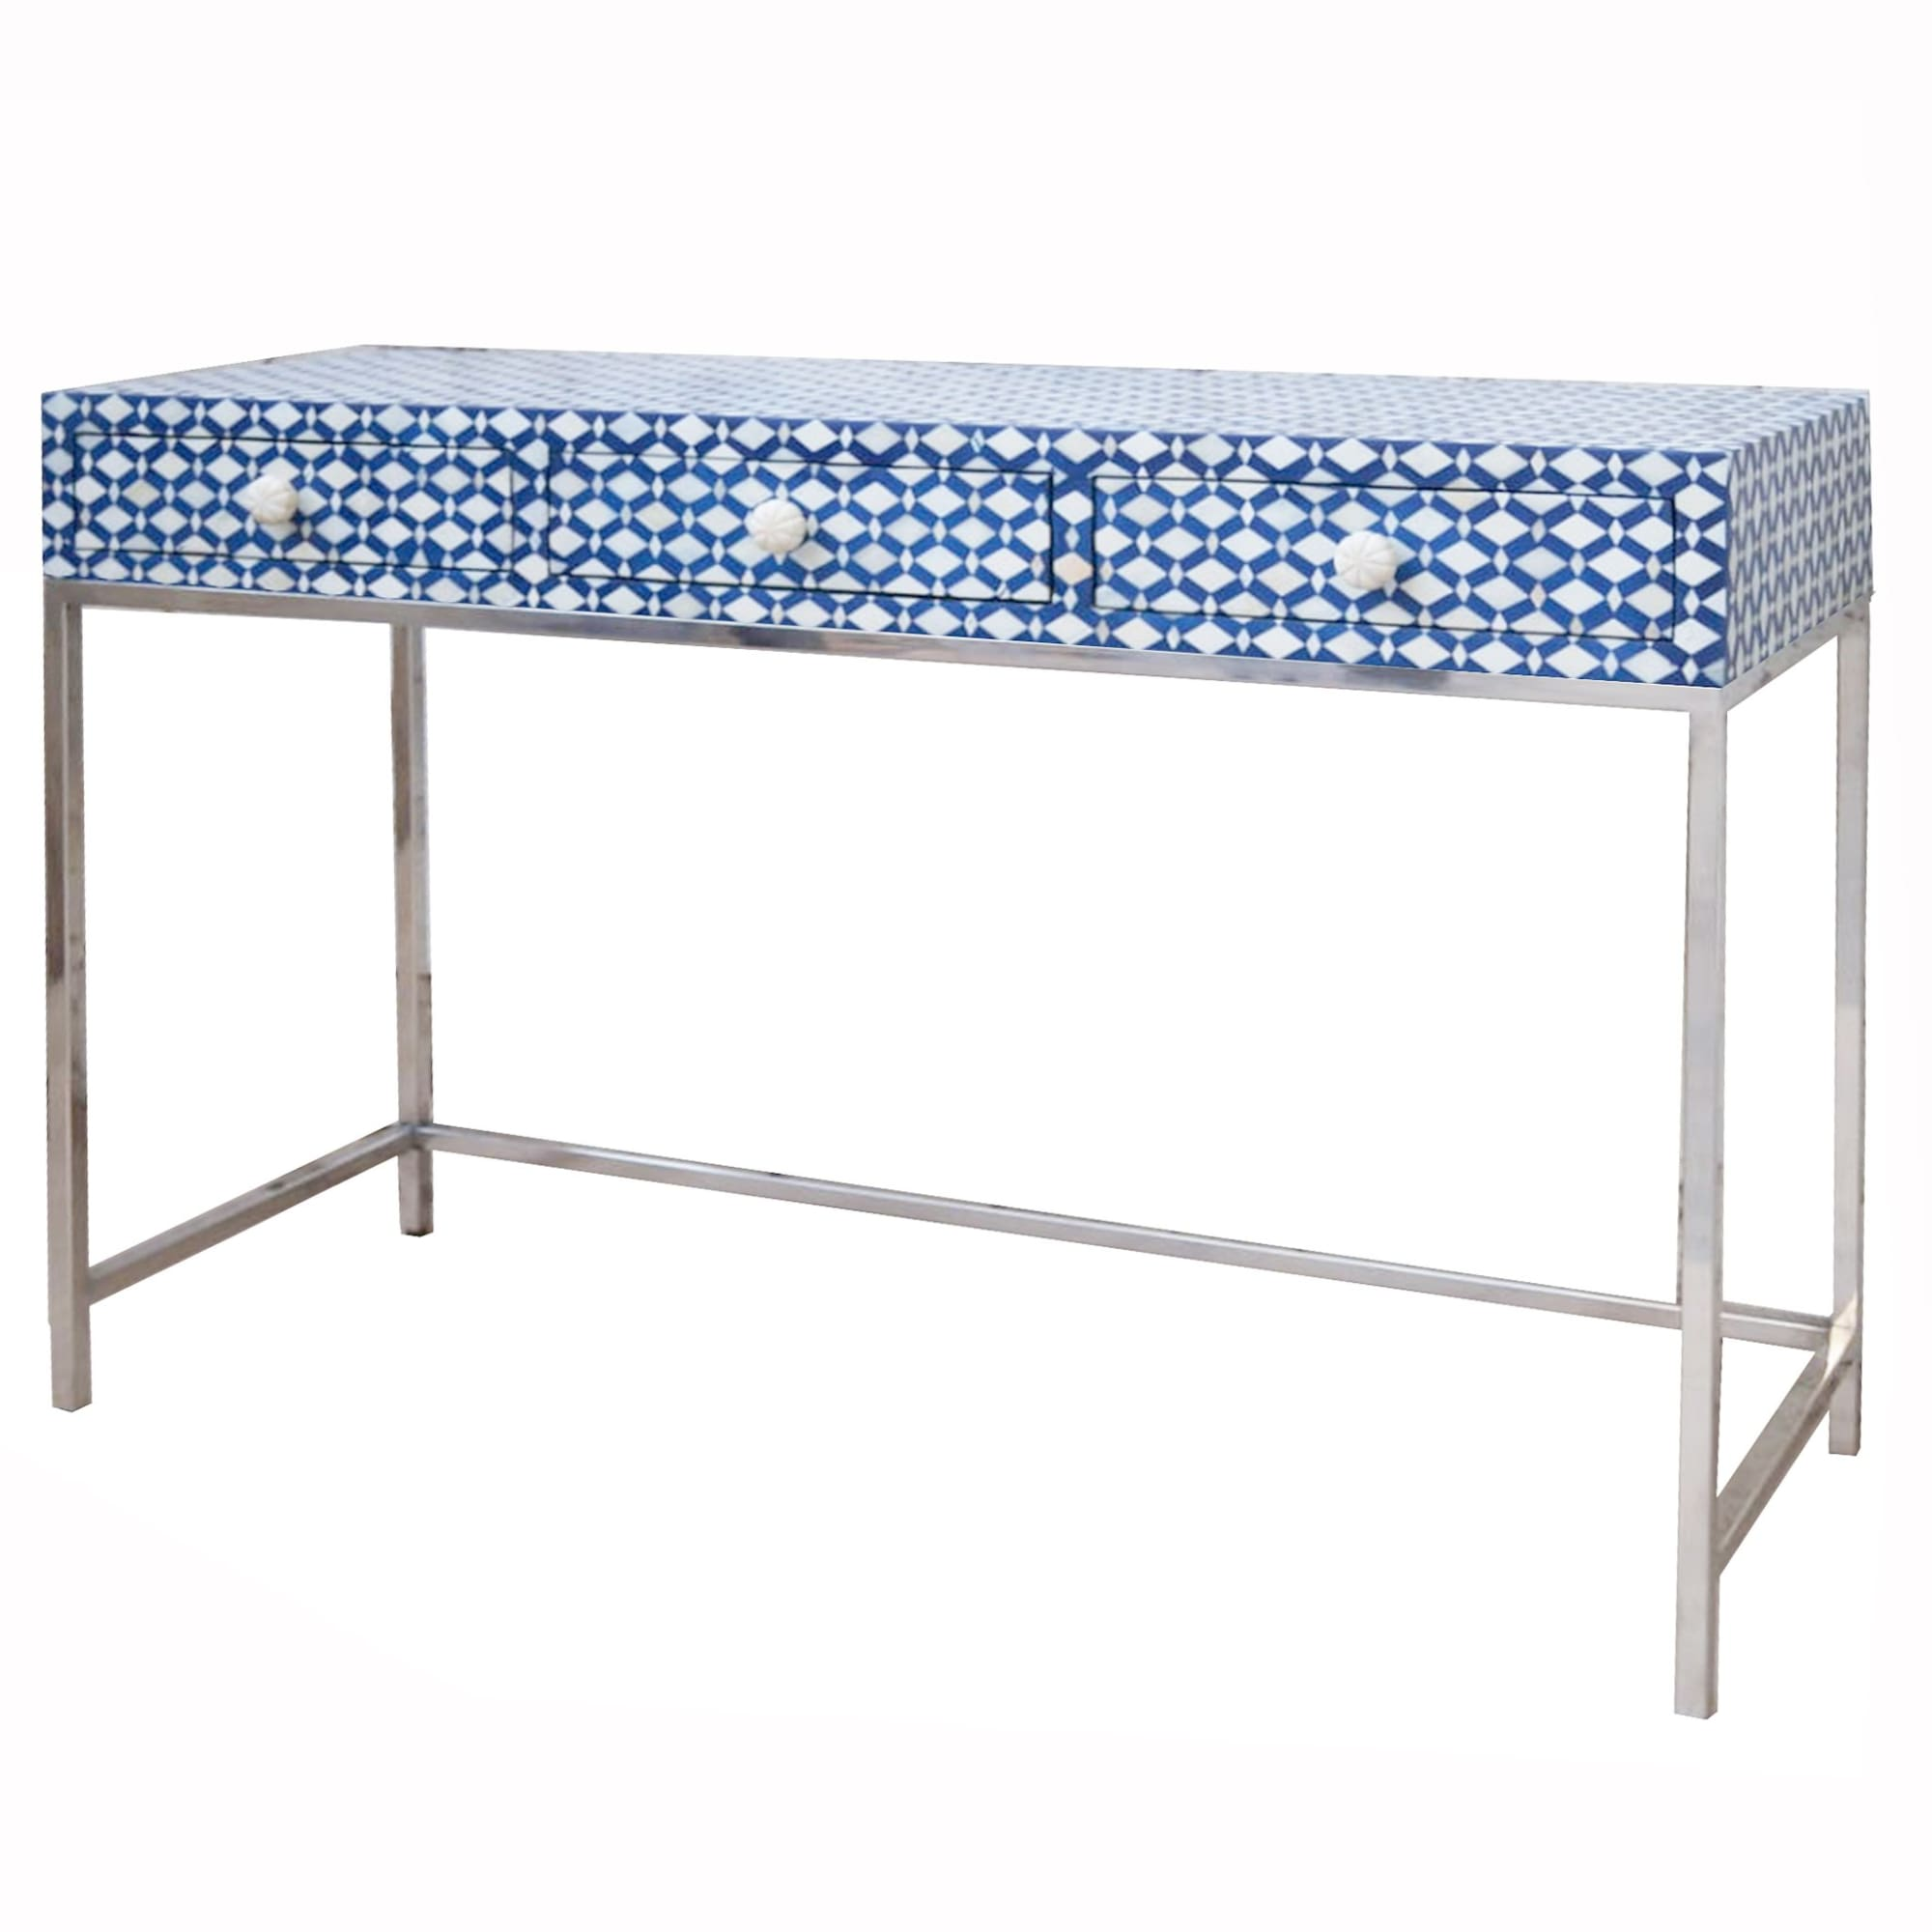 Diamond Pattern Console - Navy Blue - Desks & Consoles